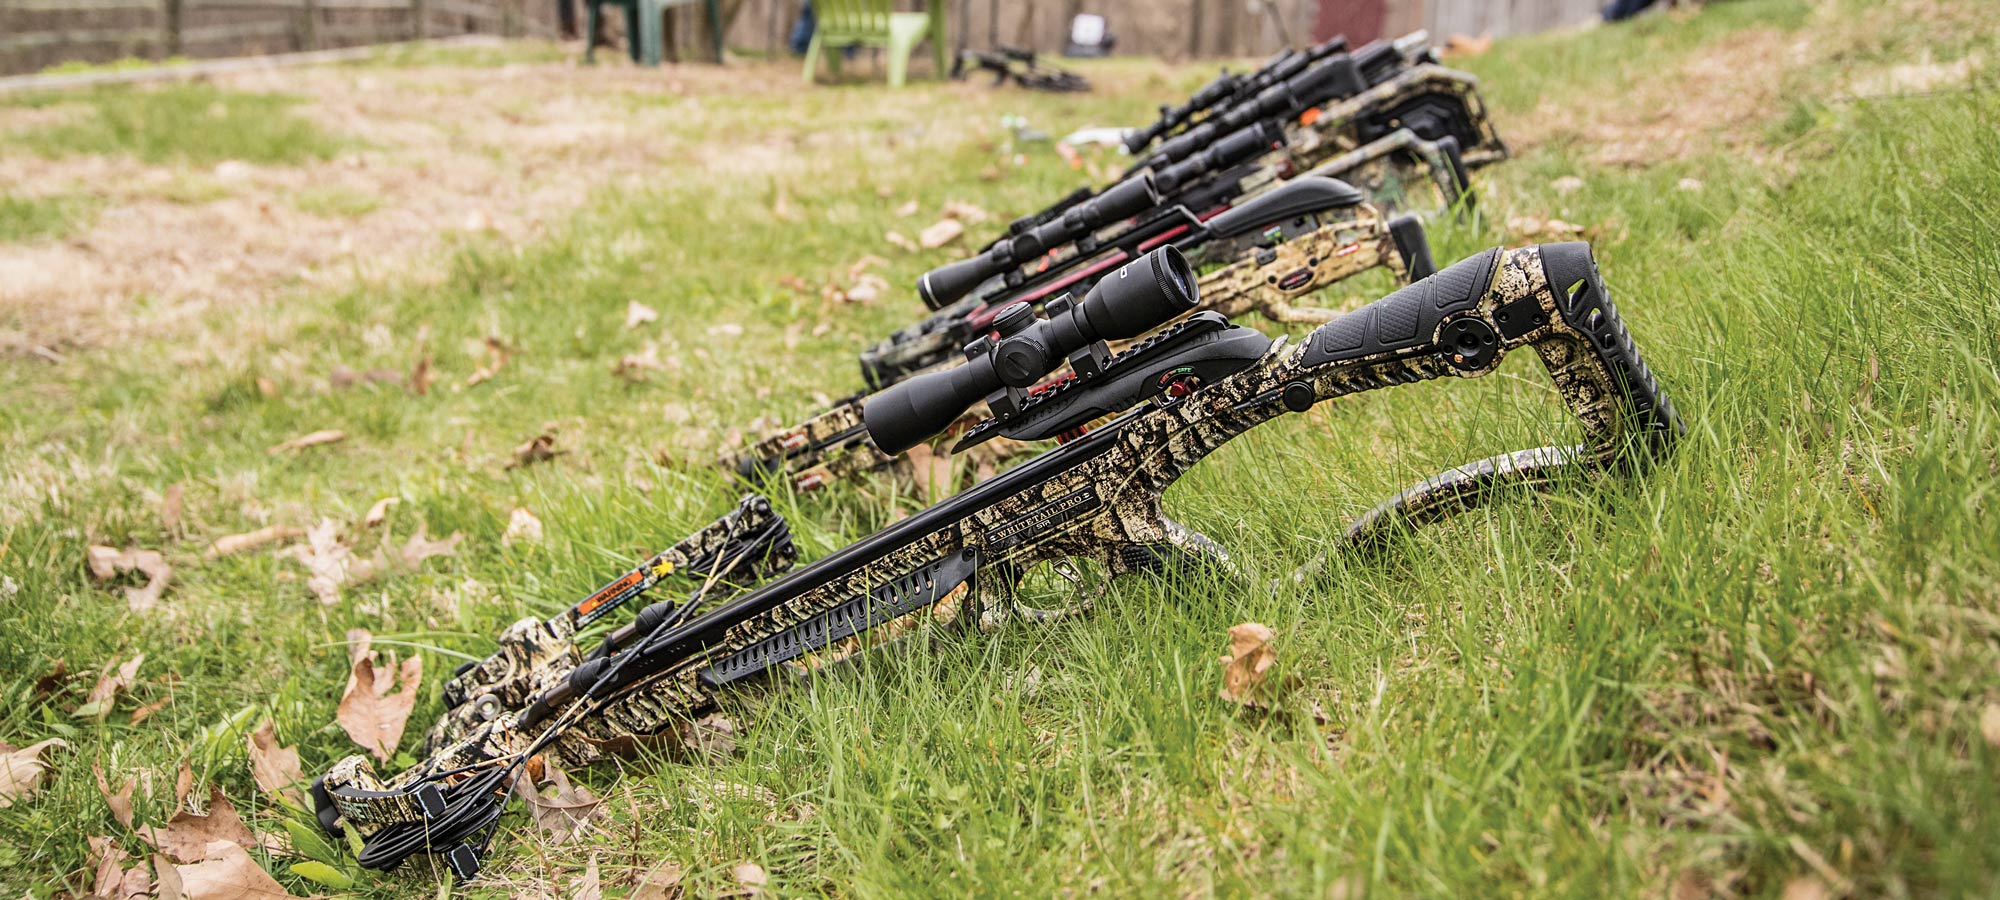 crossbows in grass